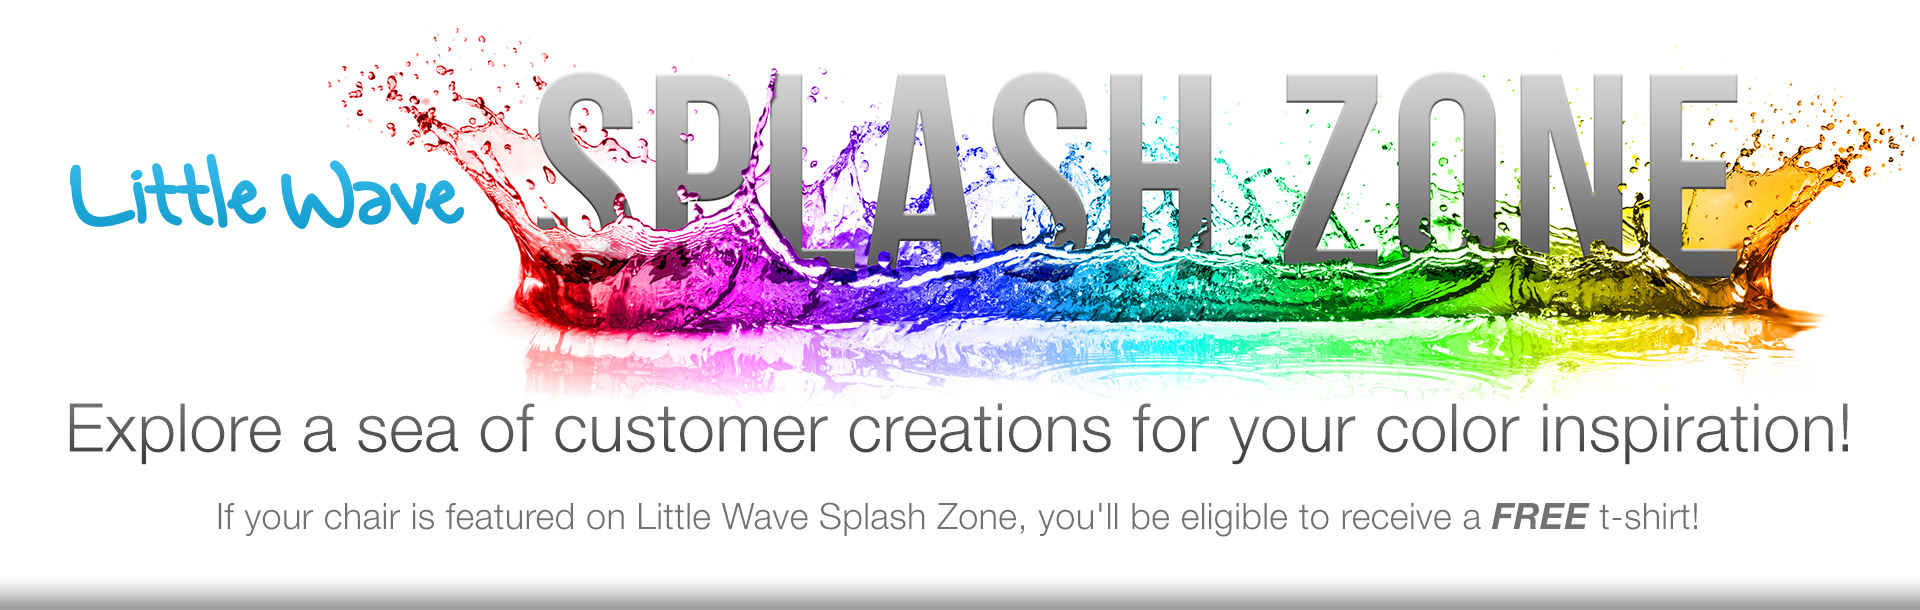 Introducing the Little Wave Splash Zone!